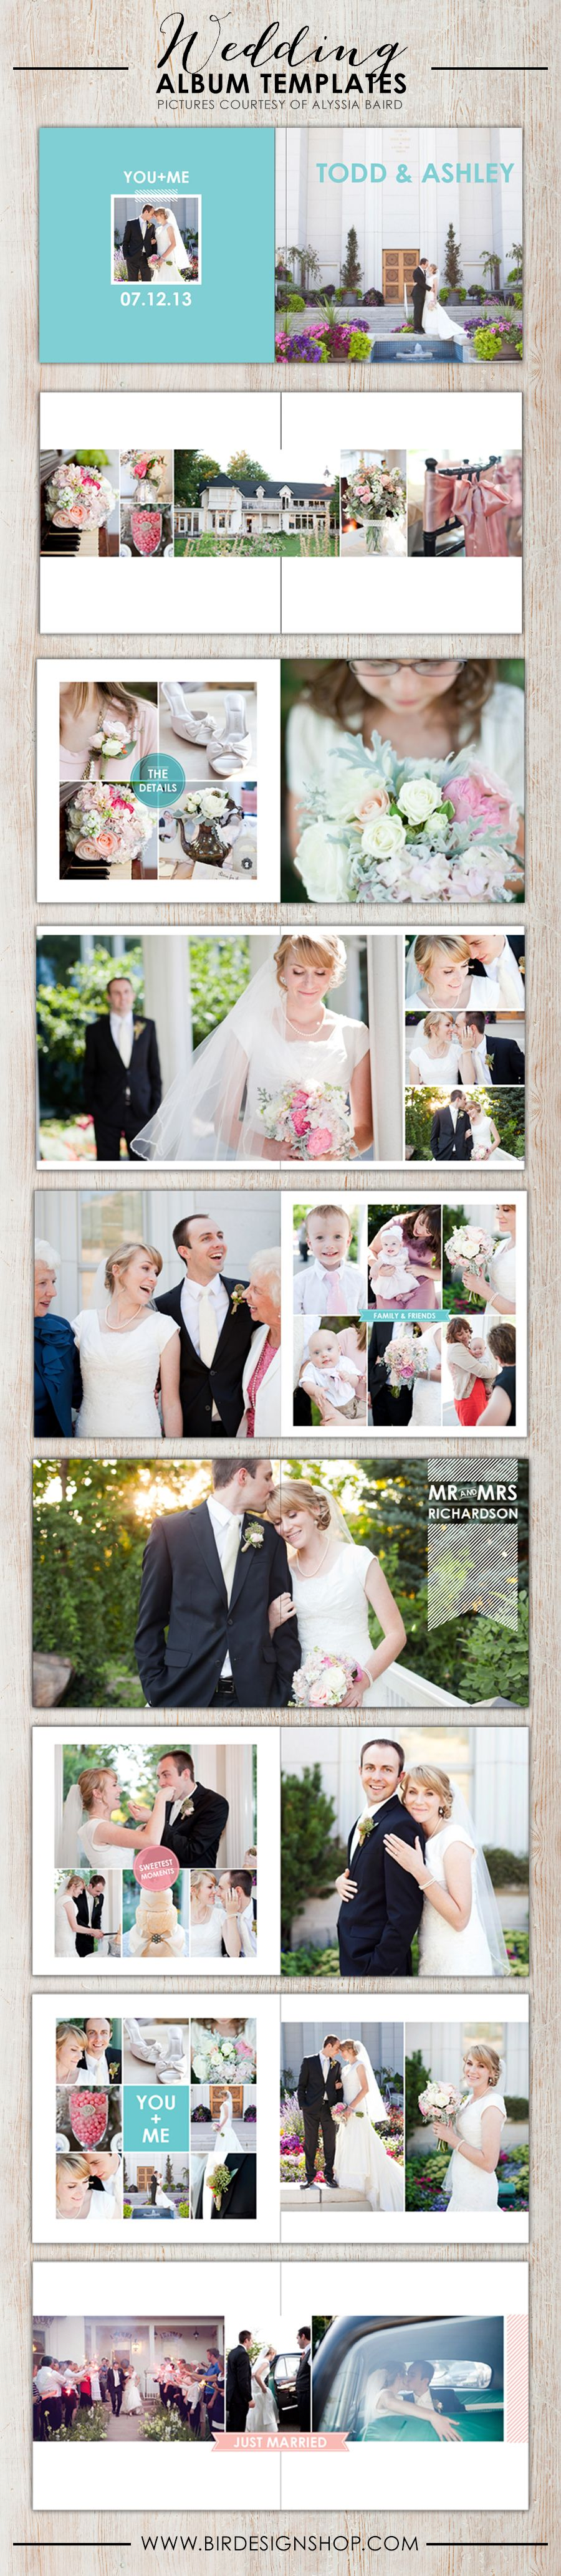 New Wedding Albums | Photography design | Pinterest | Photoshop ...